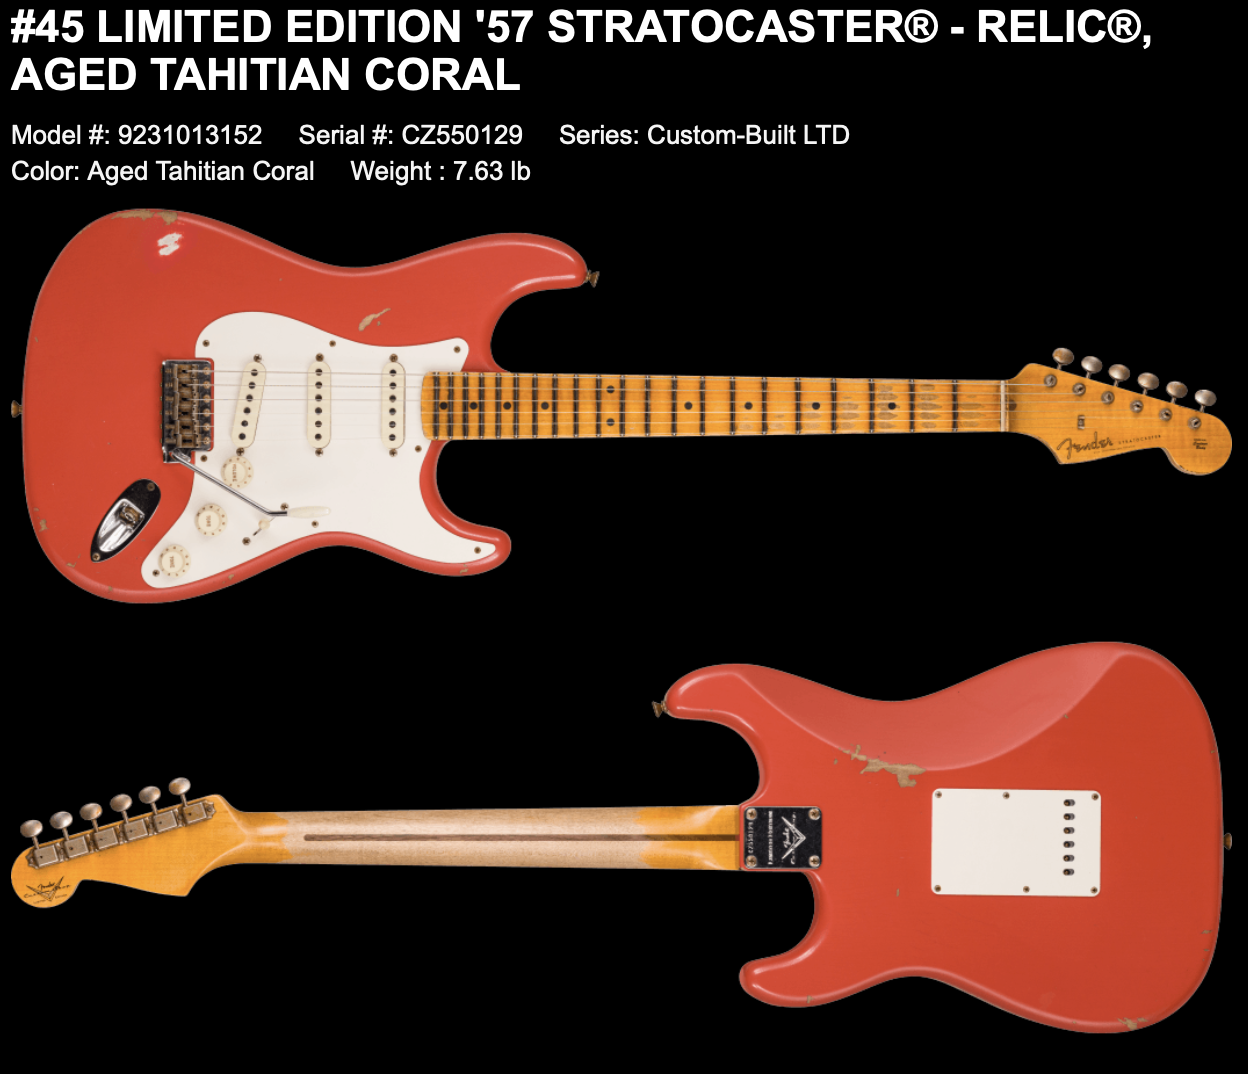 (PRE-ORDER) FENDER CUSTOM SHOP LIMITED EDITION '57 STRATOCASTER RELIC IN AGED TAHITIAN CORAL